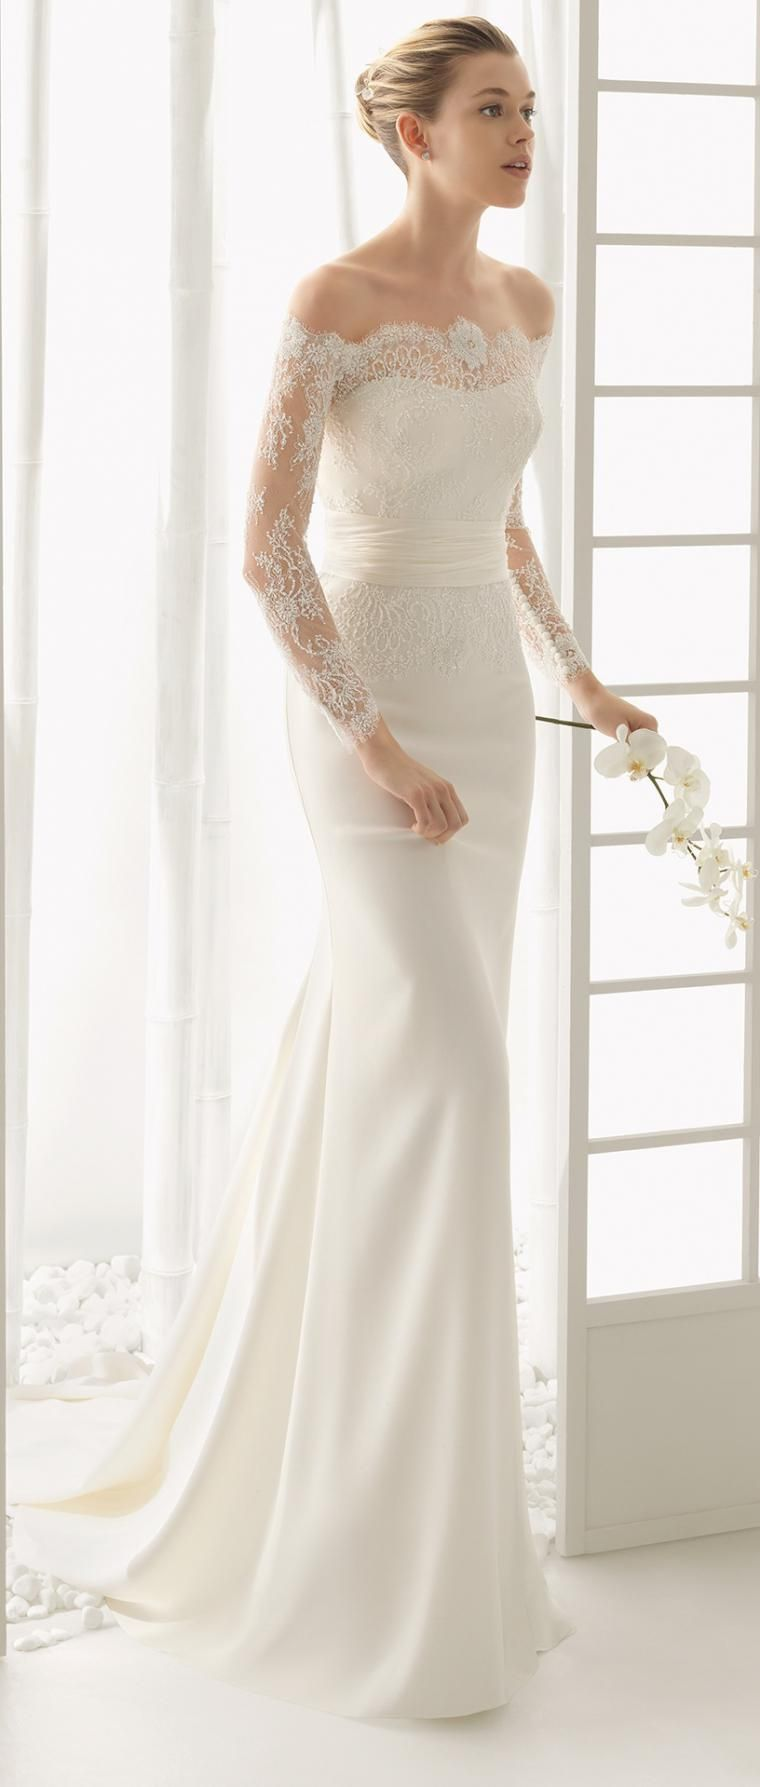 Wedding-Dresses-0429